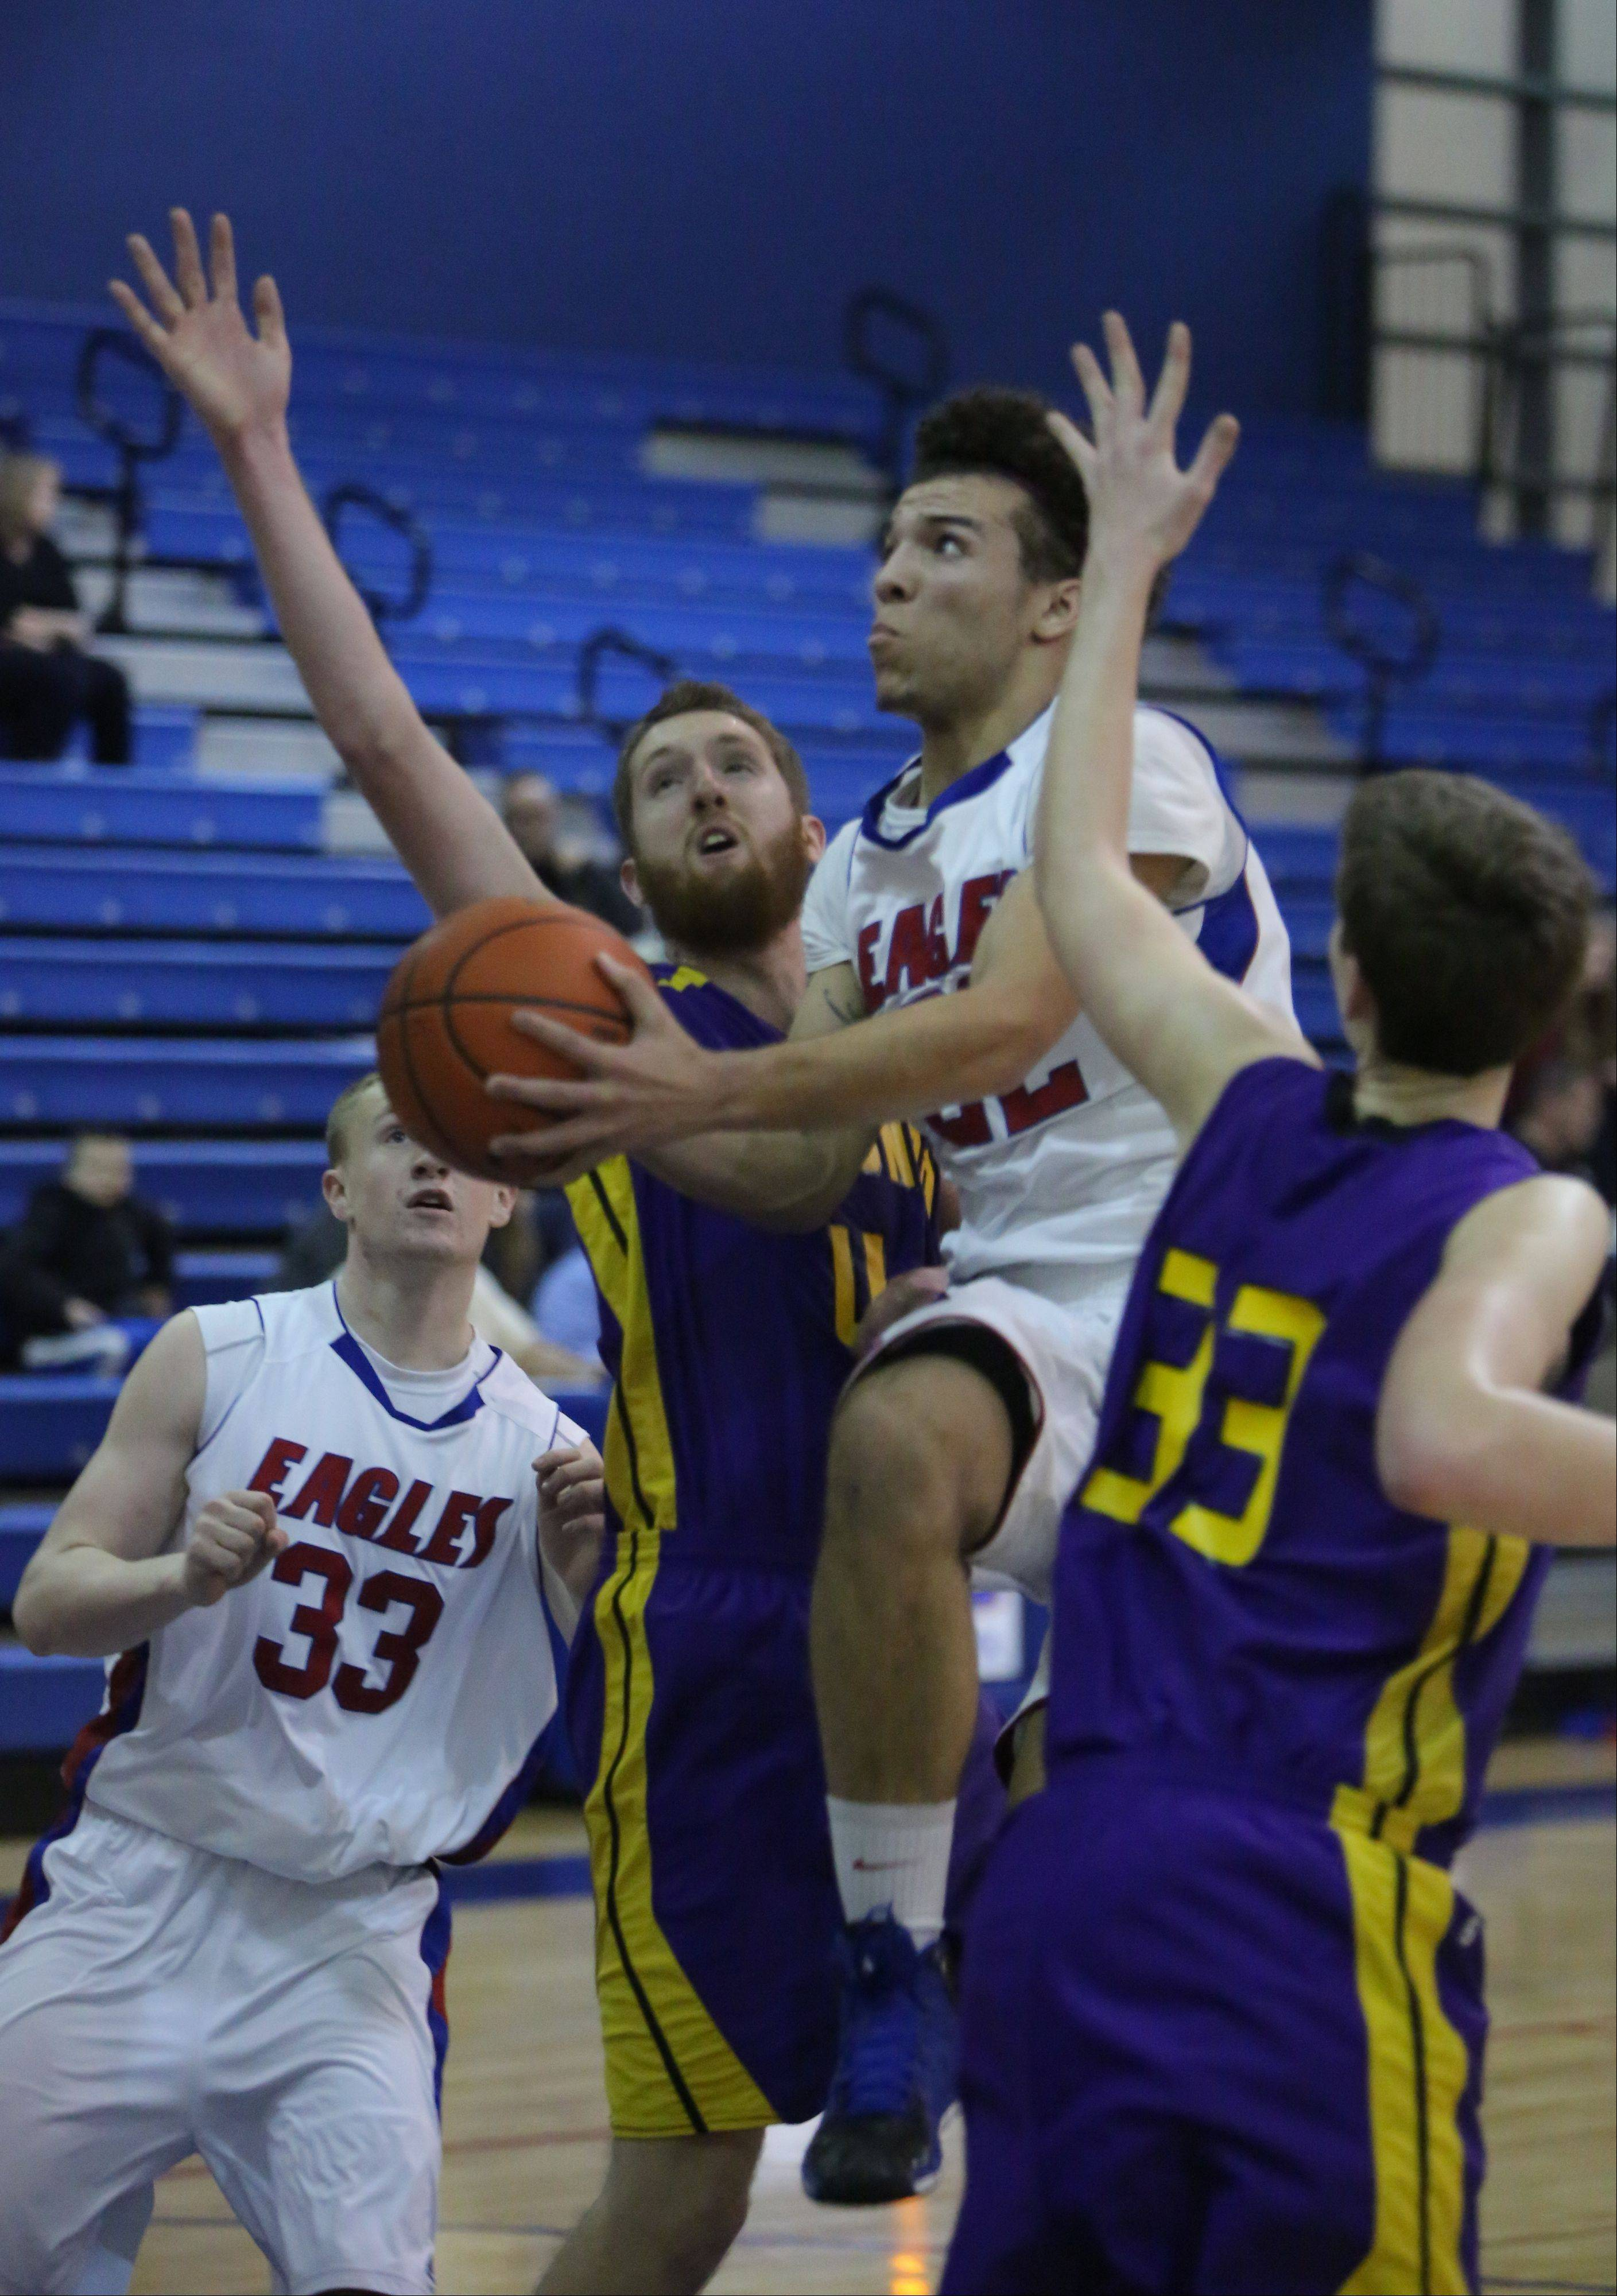 Images from the Wauconda at Lakes boys basketball game on Tuesday, January 14 in Lake Villa.